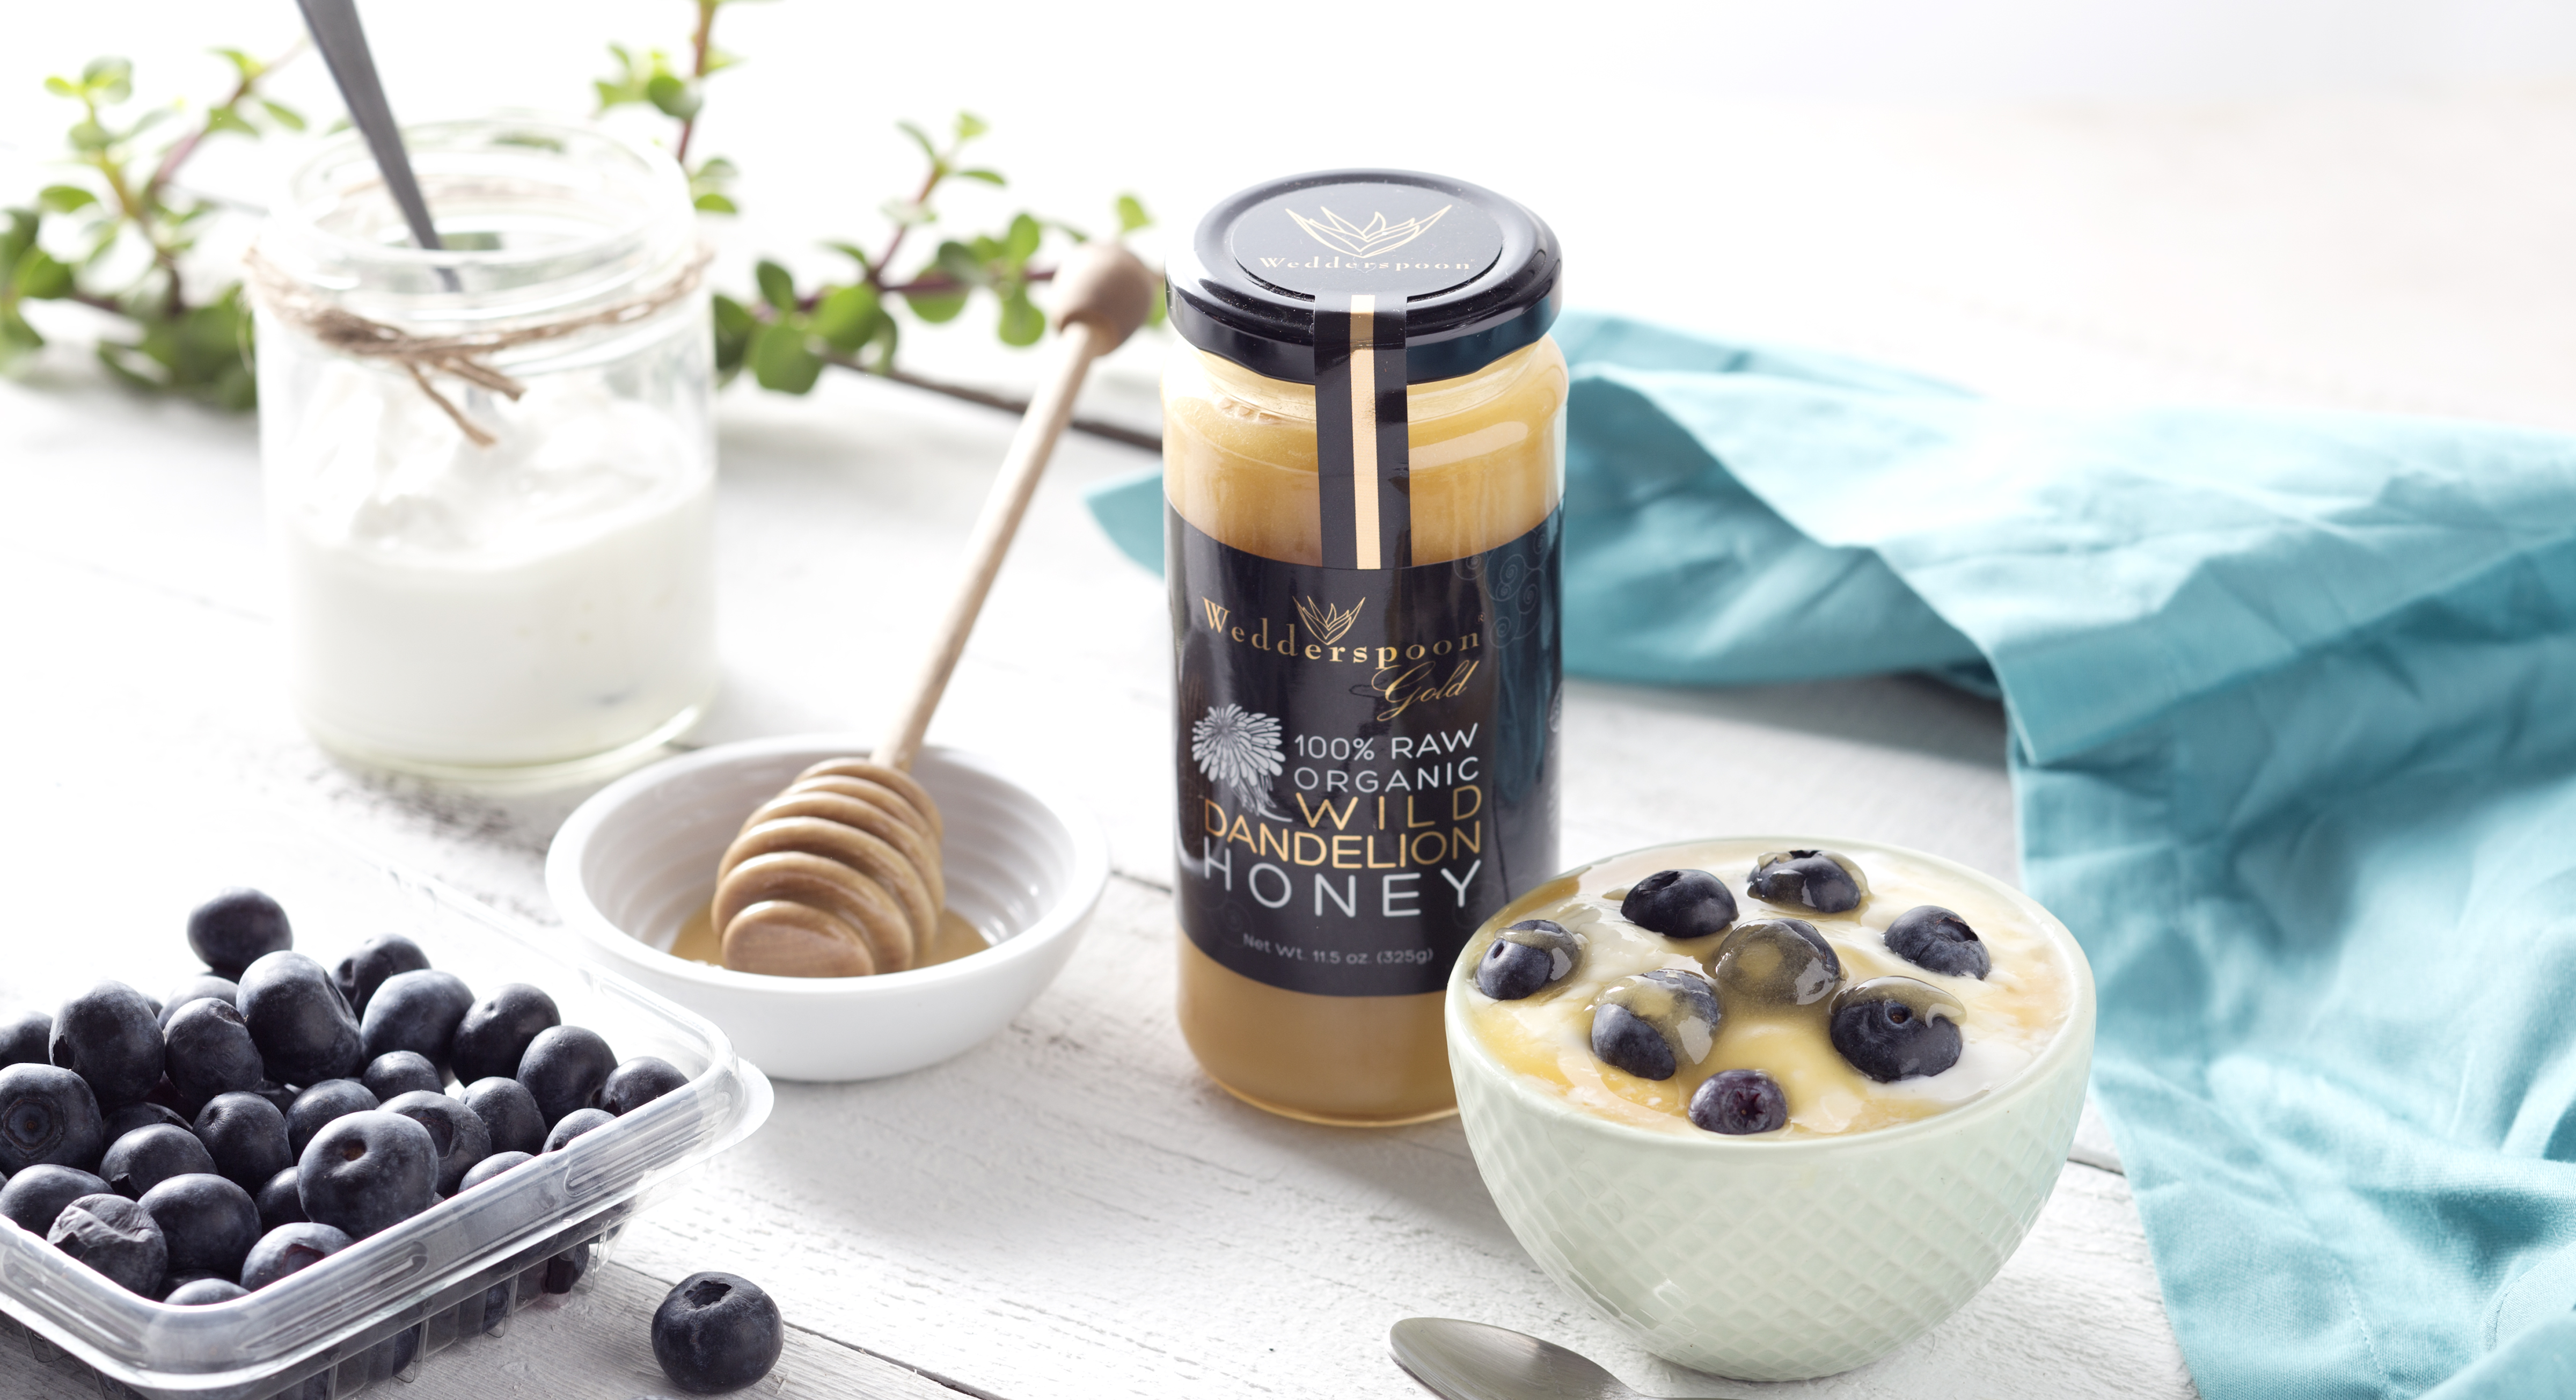 Wedderspoon: Bringing Manuka Honey to the Masses